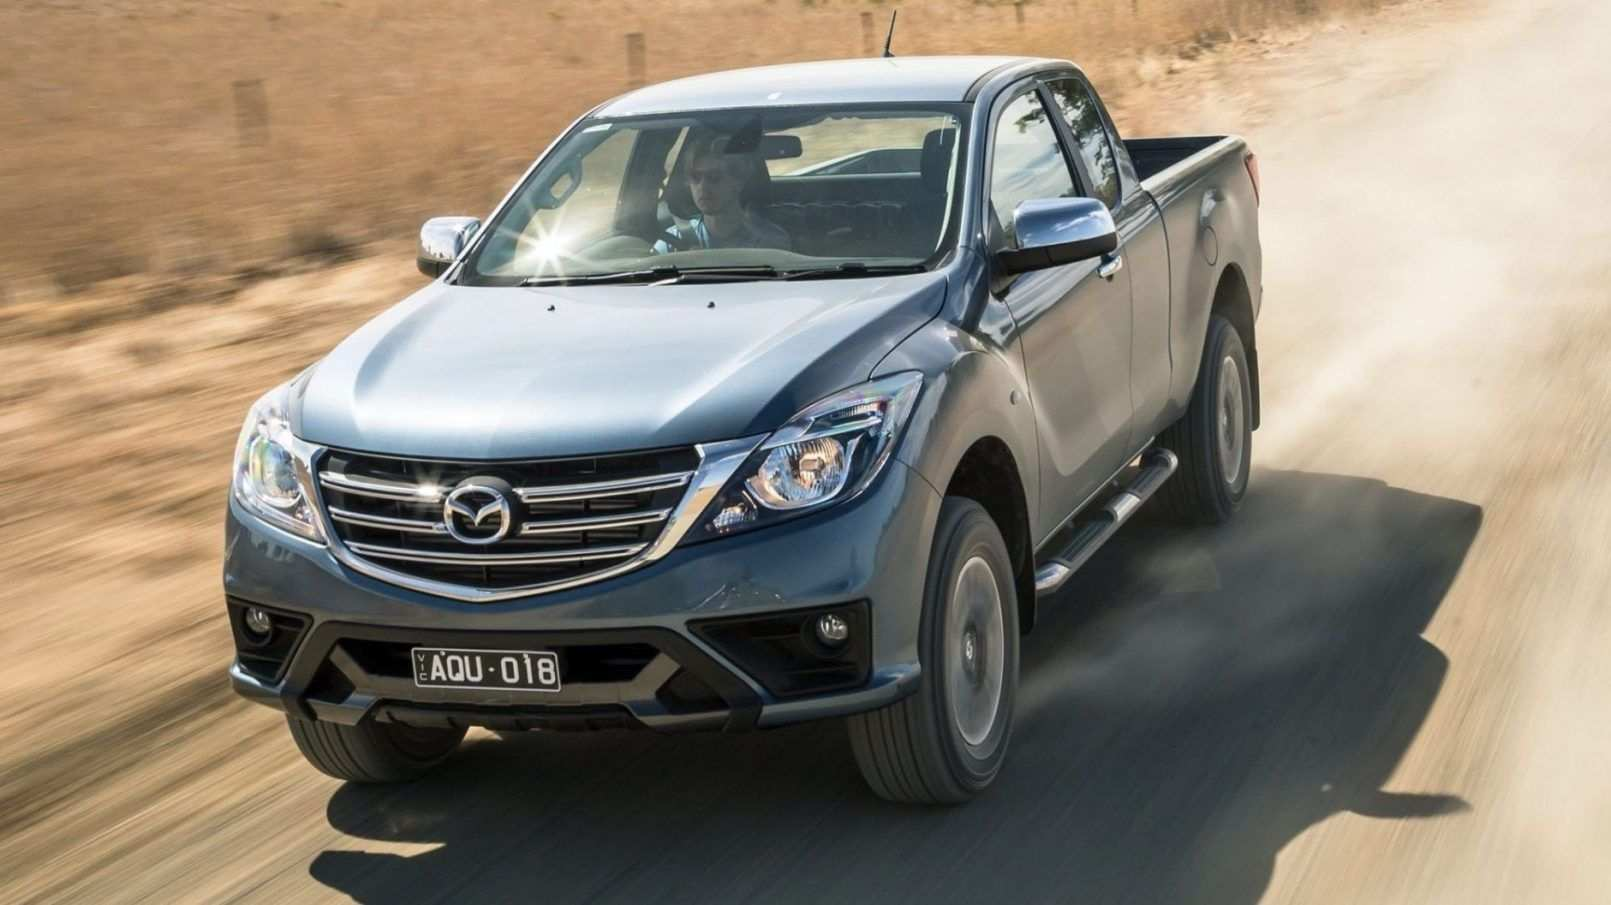 16 All New Mazda Bt 50 Pro 2019 Review Specs with Mazda Bt 50 Pro 2019 Review